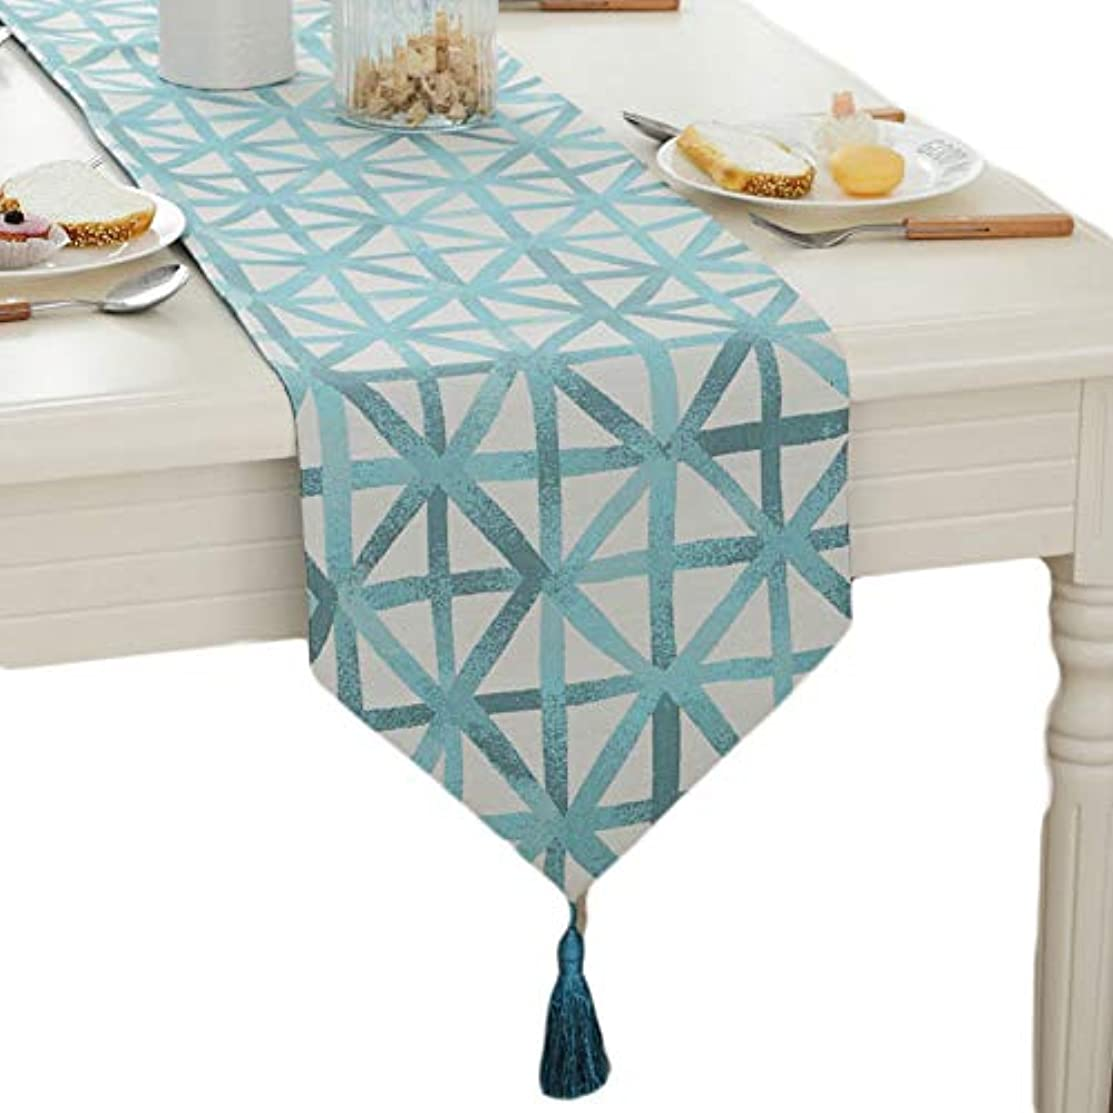 Cityeast Geometric Table Runner with Jacquard Tassel Pendant Polyester TV Cabinet Bar Coffee Table Hotel Table Runner for Home Dining BBQ Parties, 12.6 x 63 Inches, Light Blue